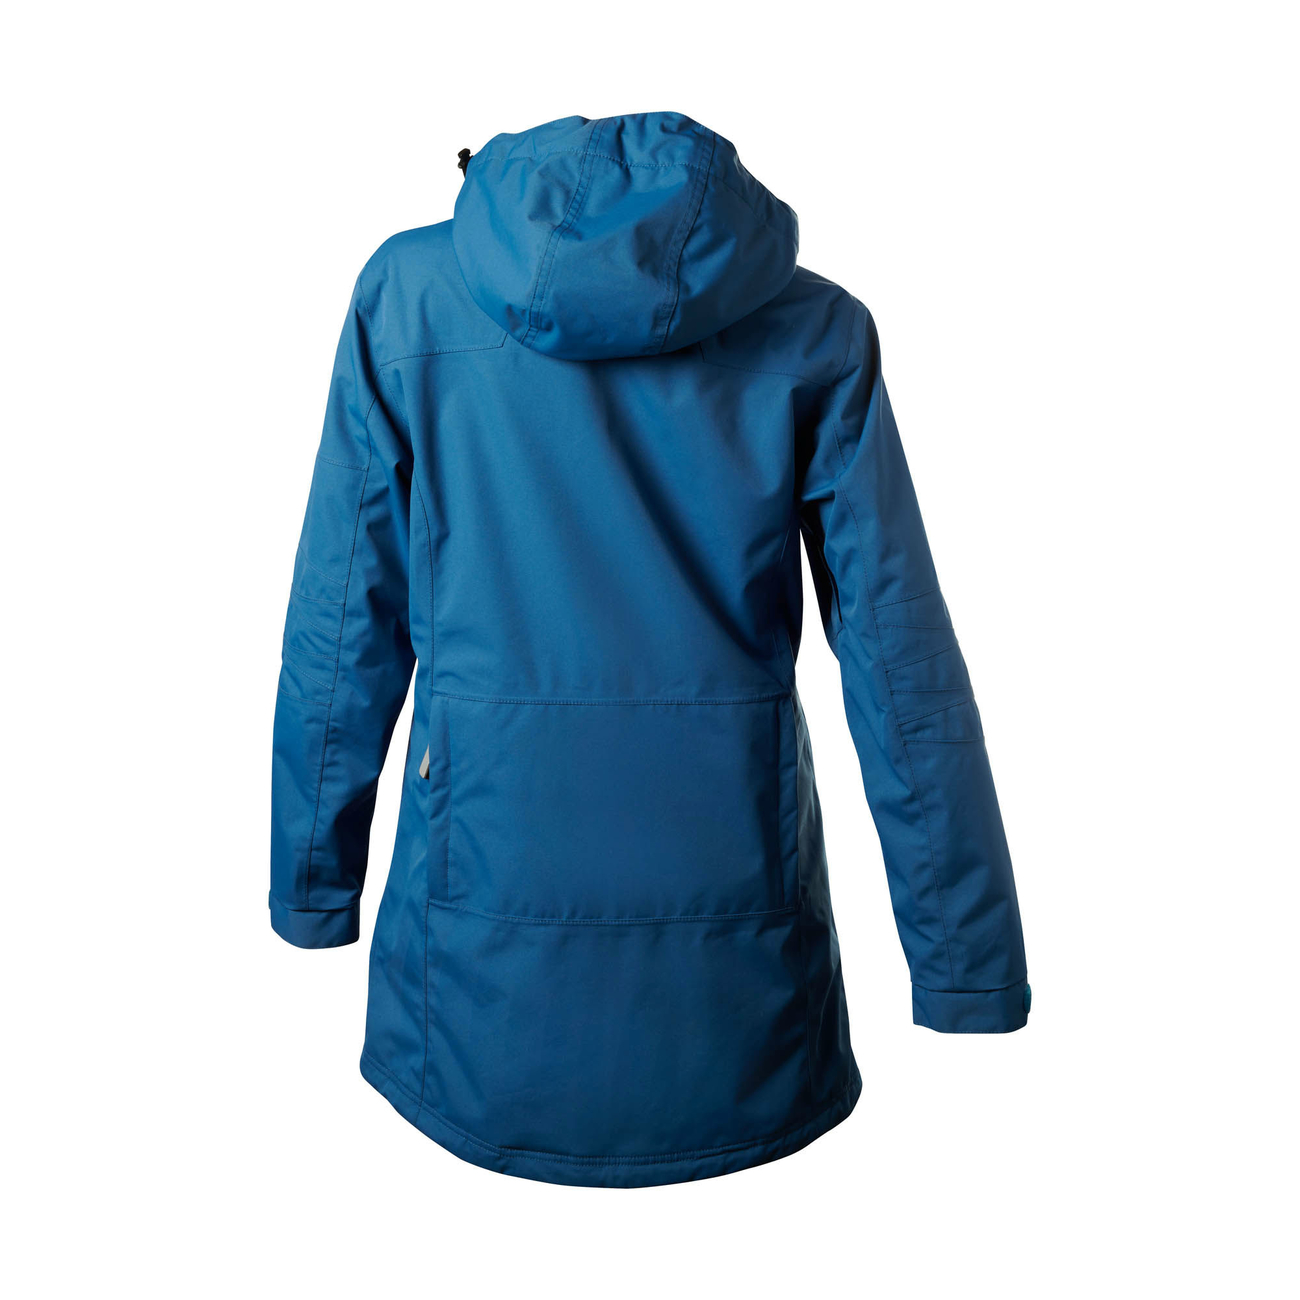 Owney Outdoor Damenparka Arnauti, Bild 12